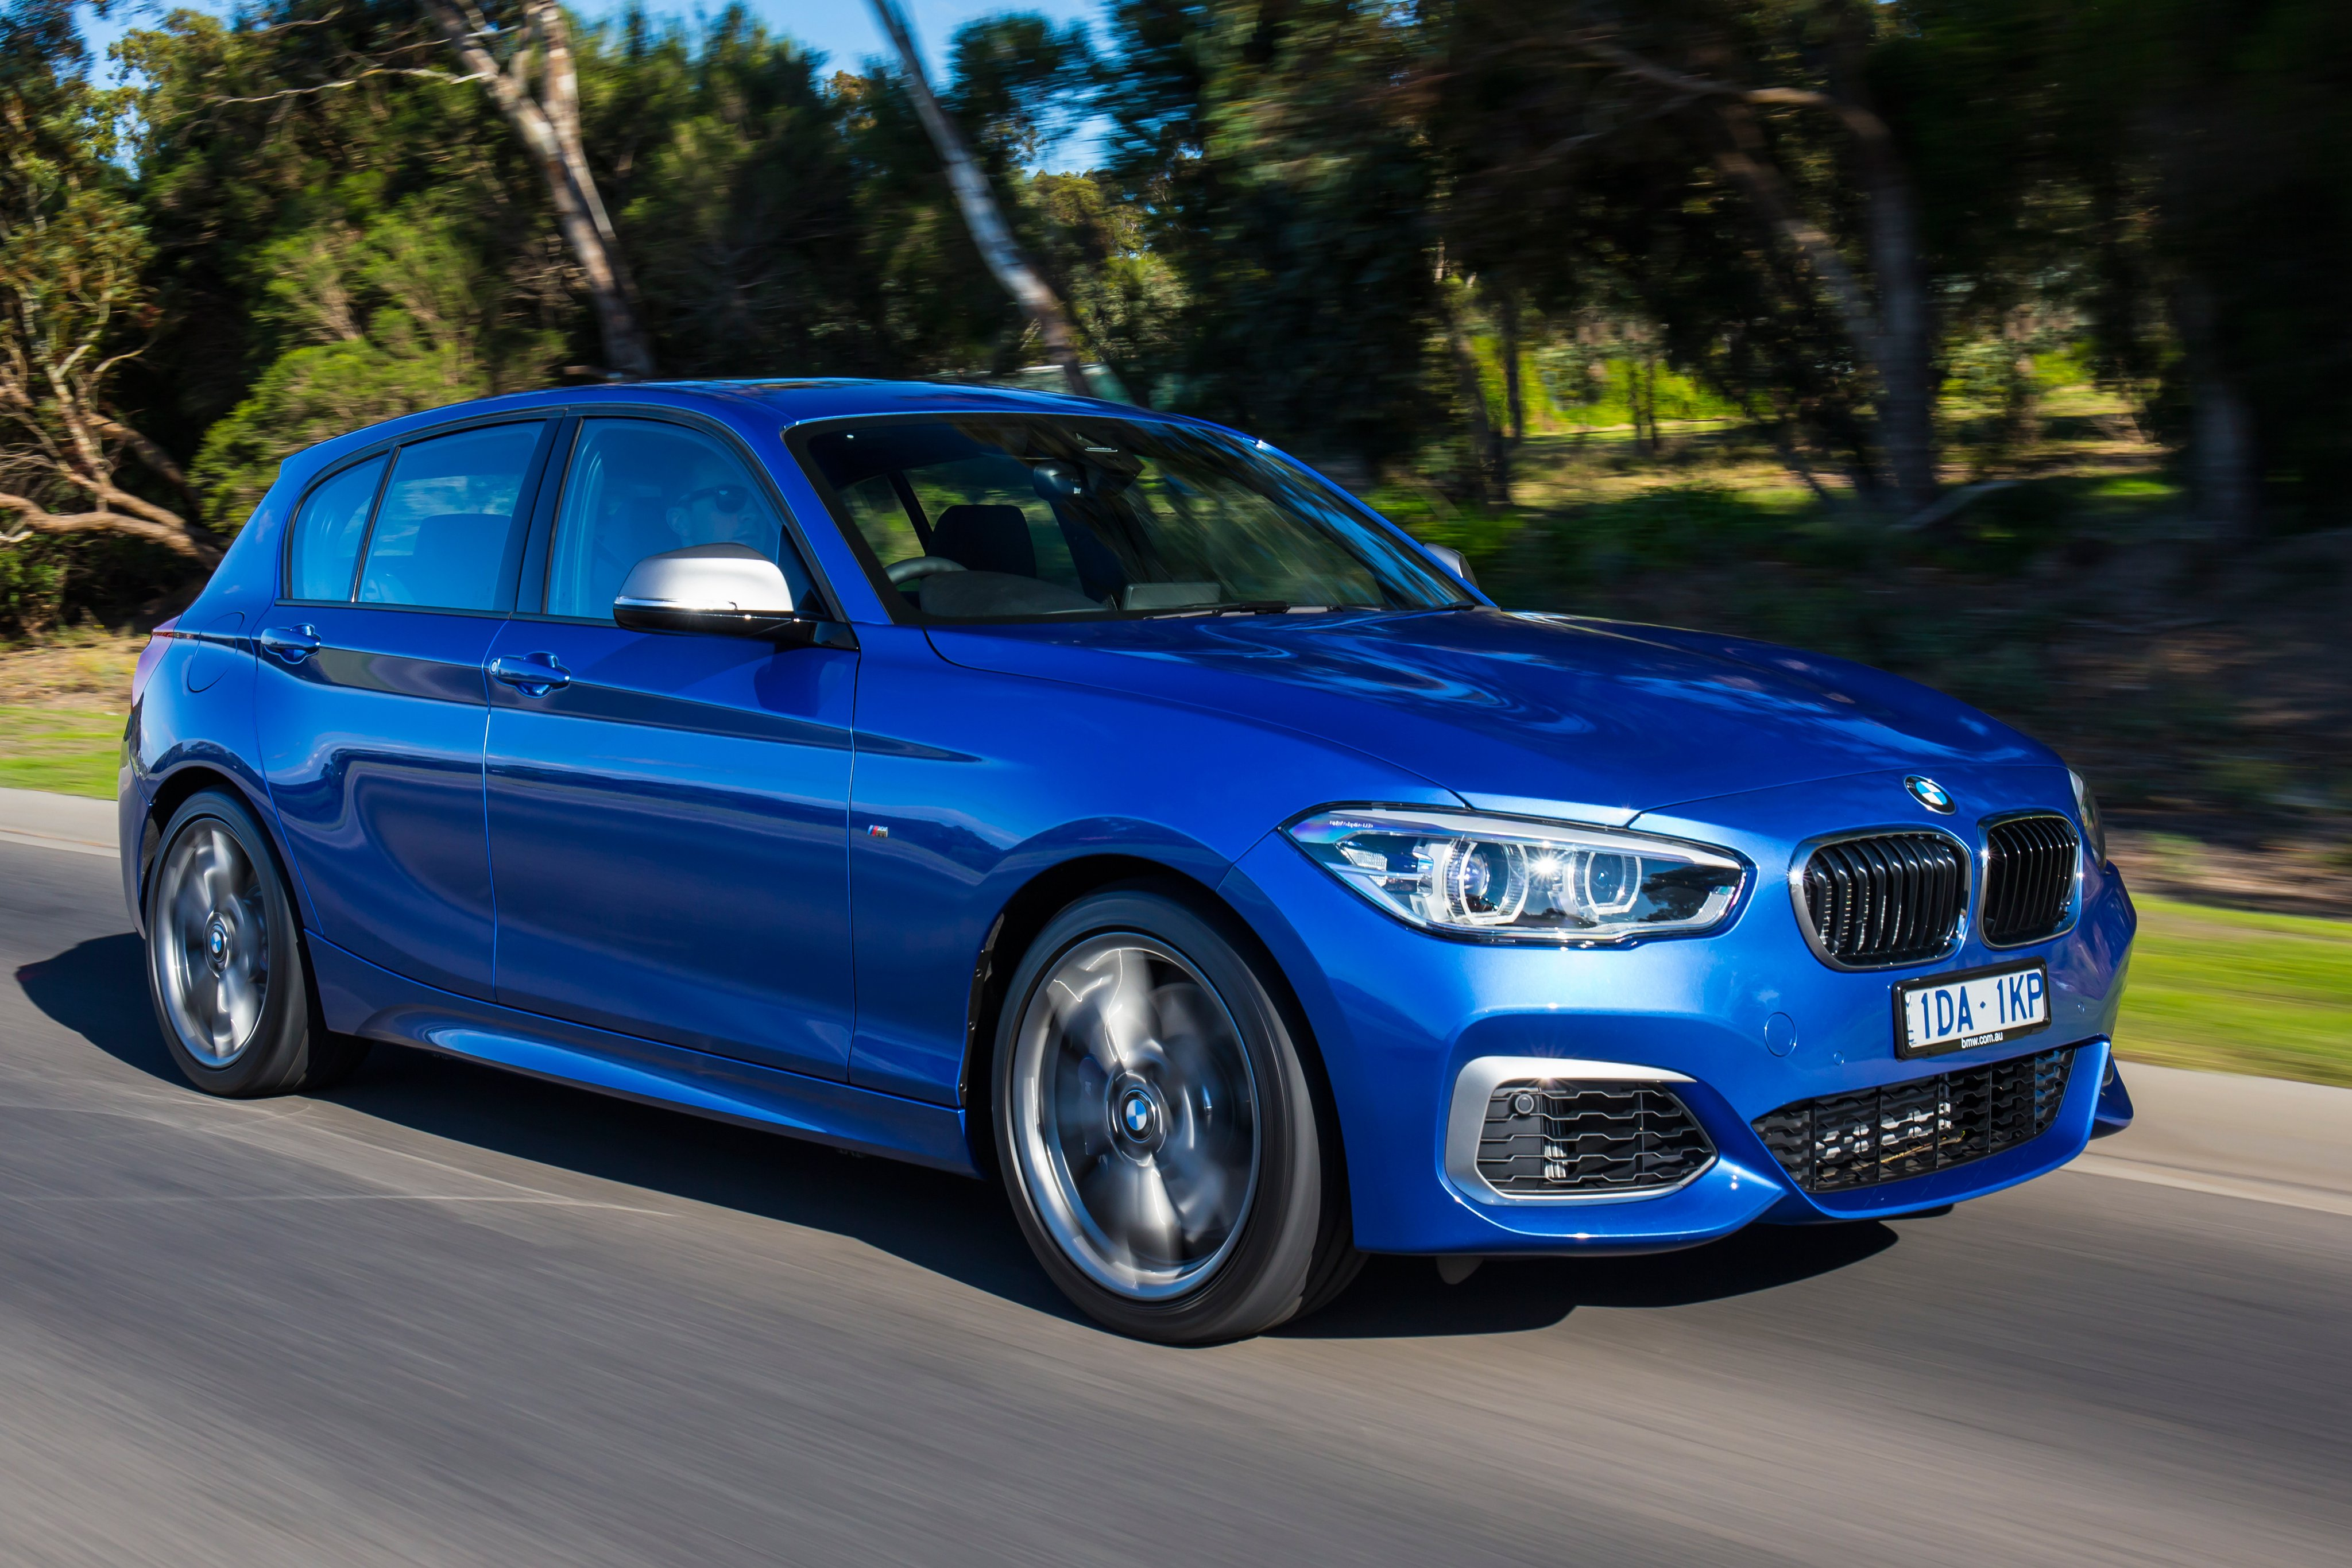 sale everett for in used lease national bmw first search wa